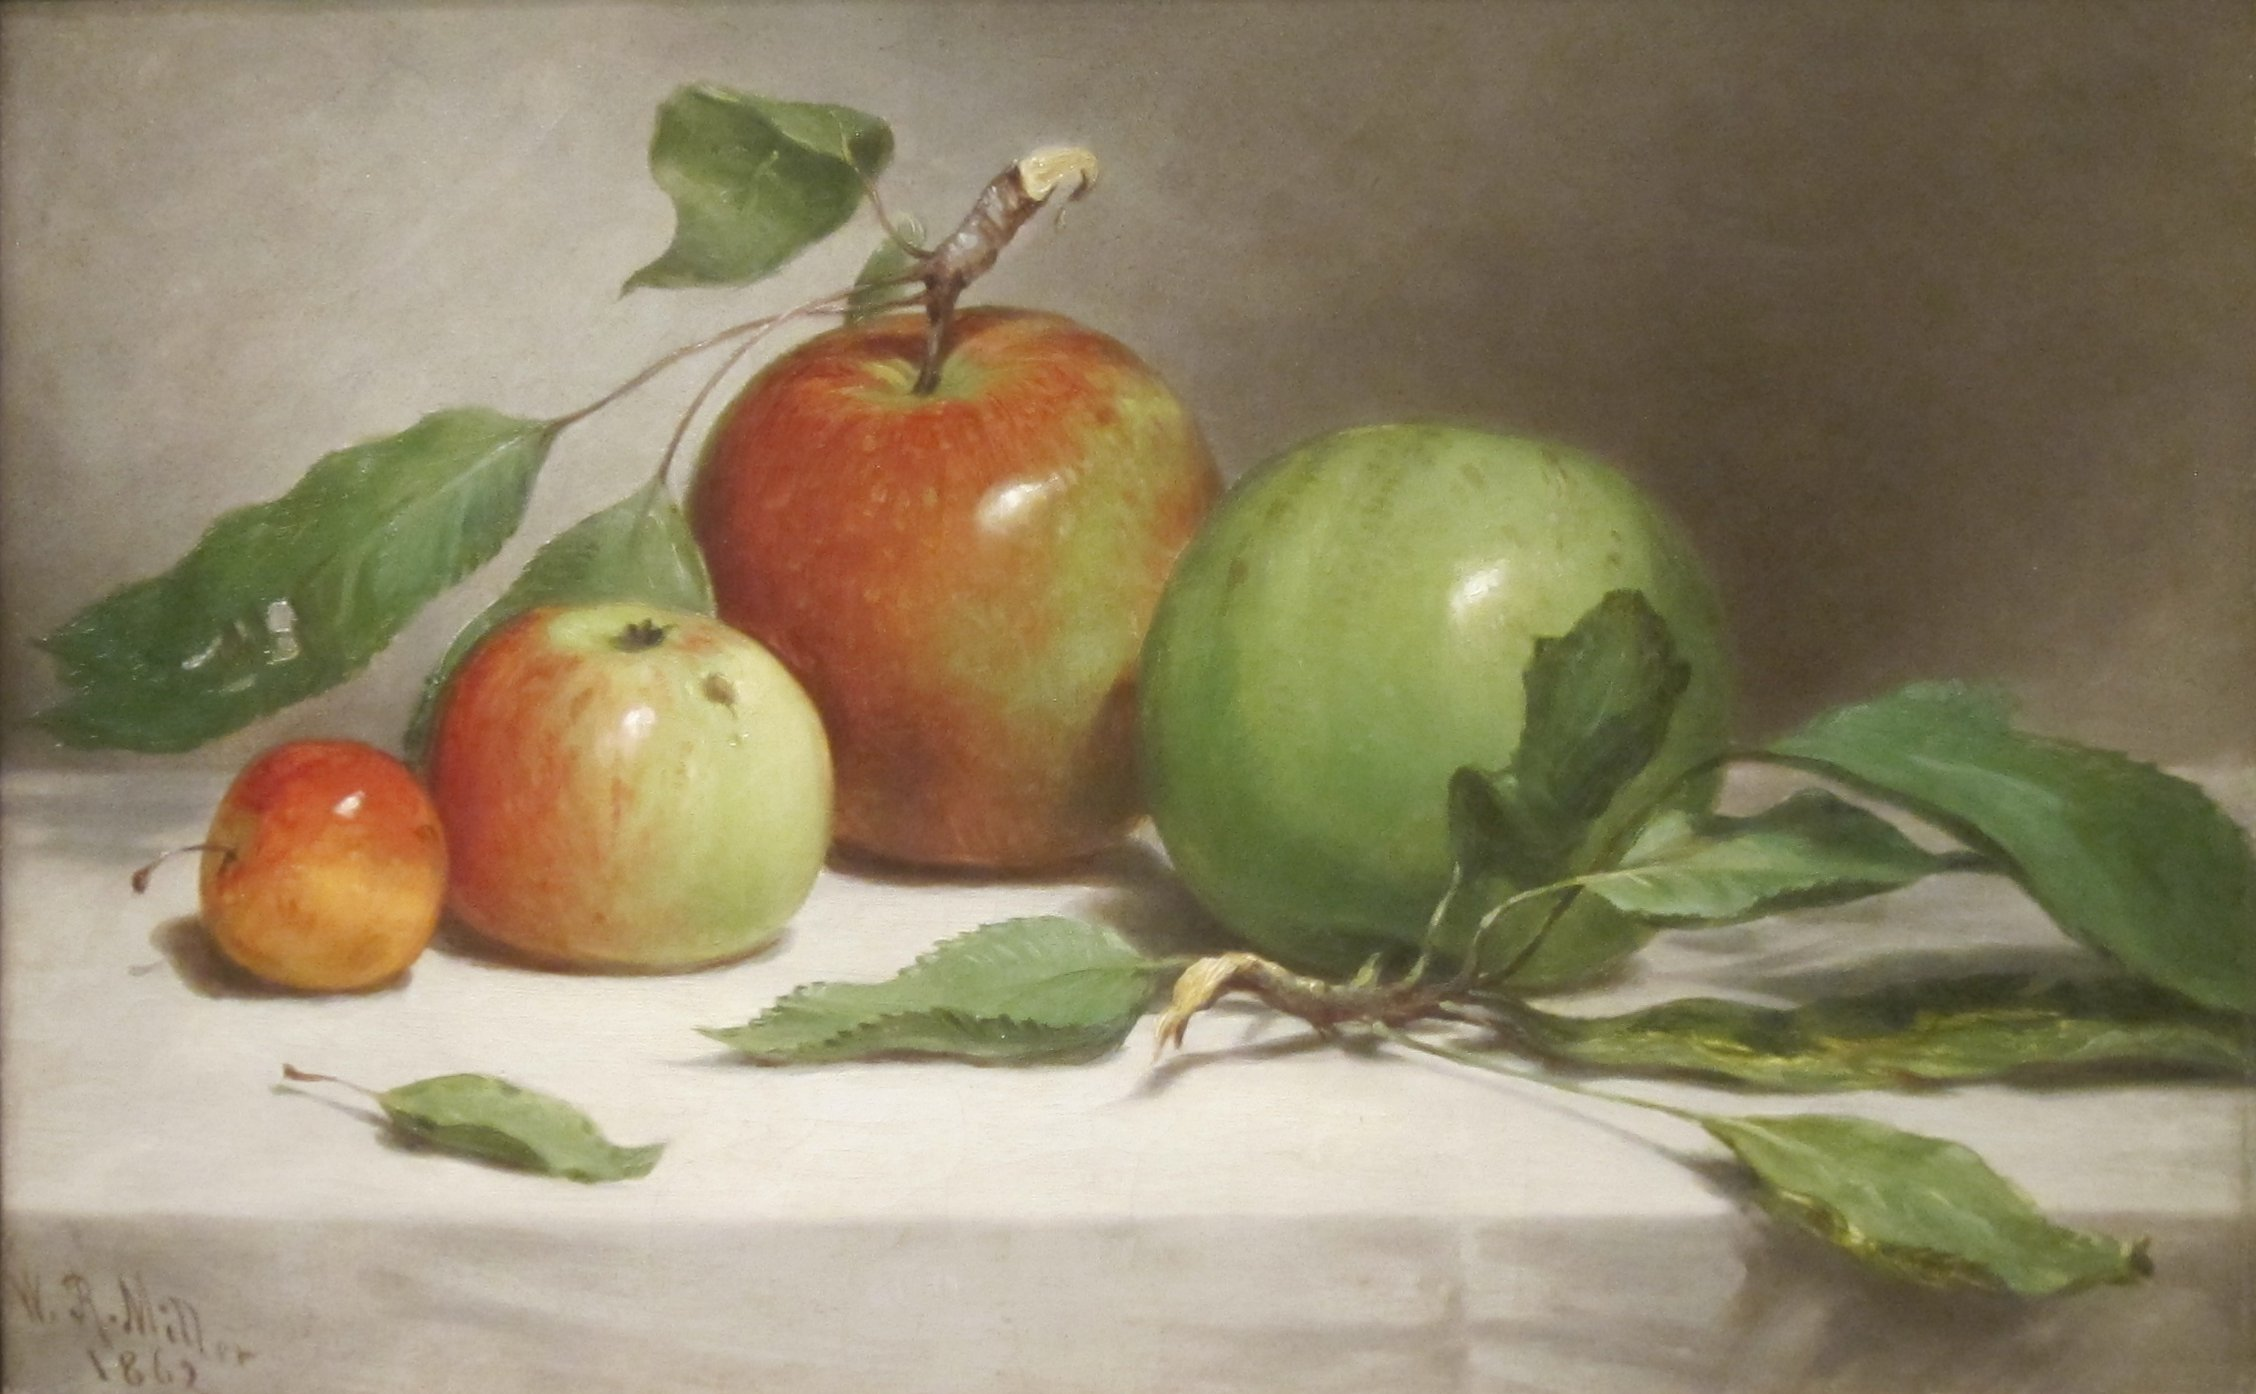 filestill lifestudy of apples by william rickarby